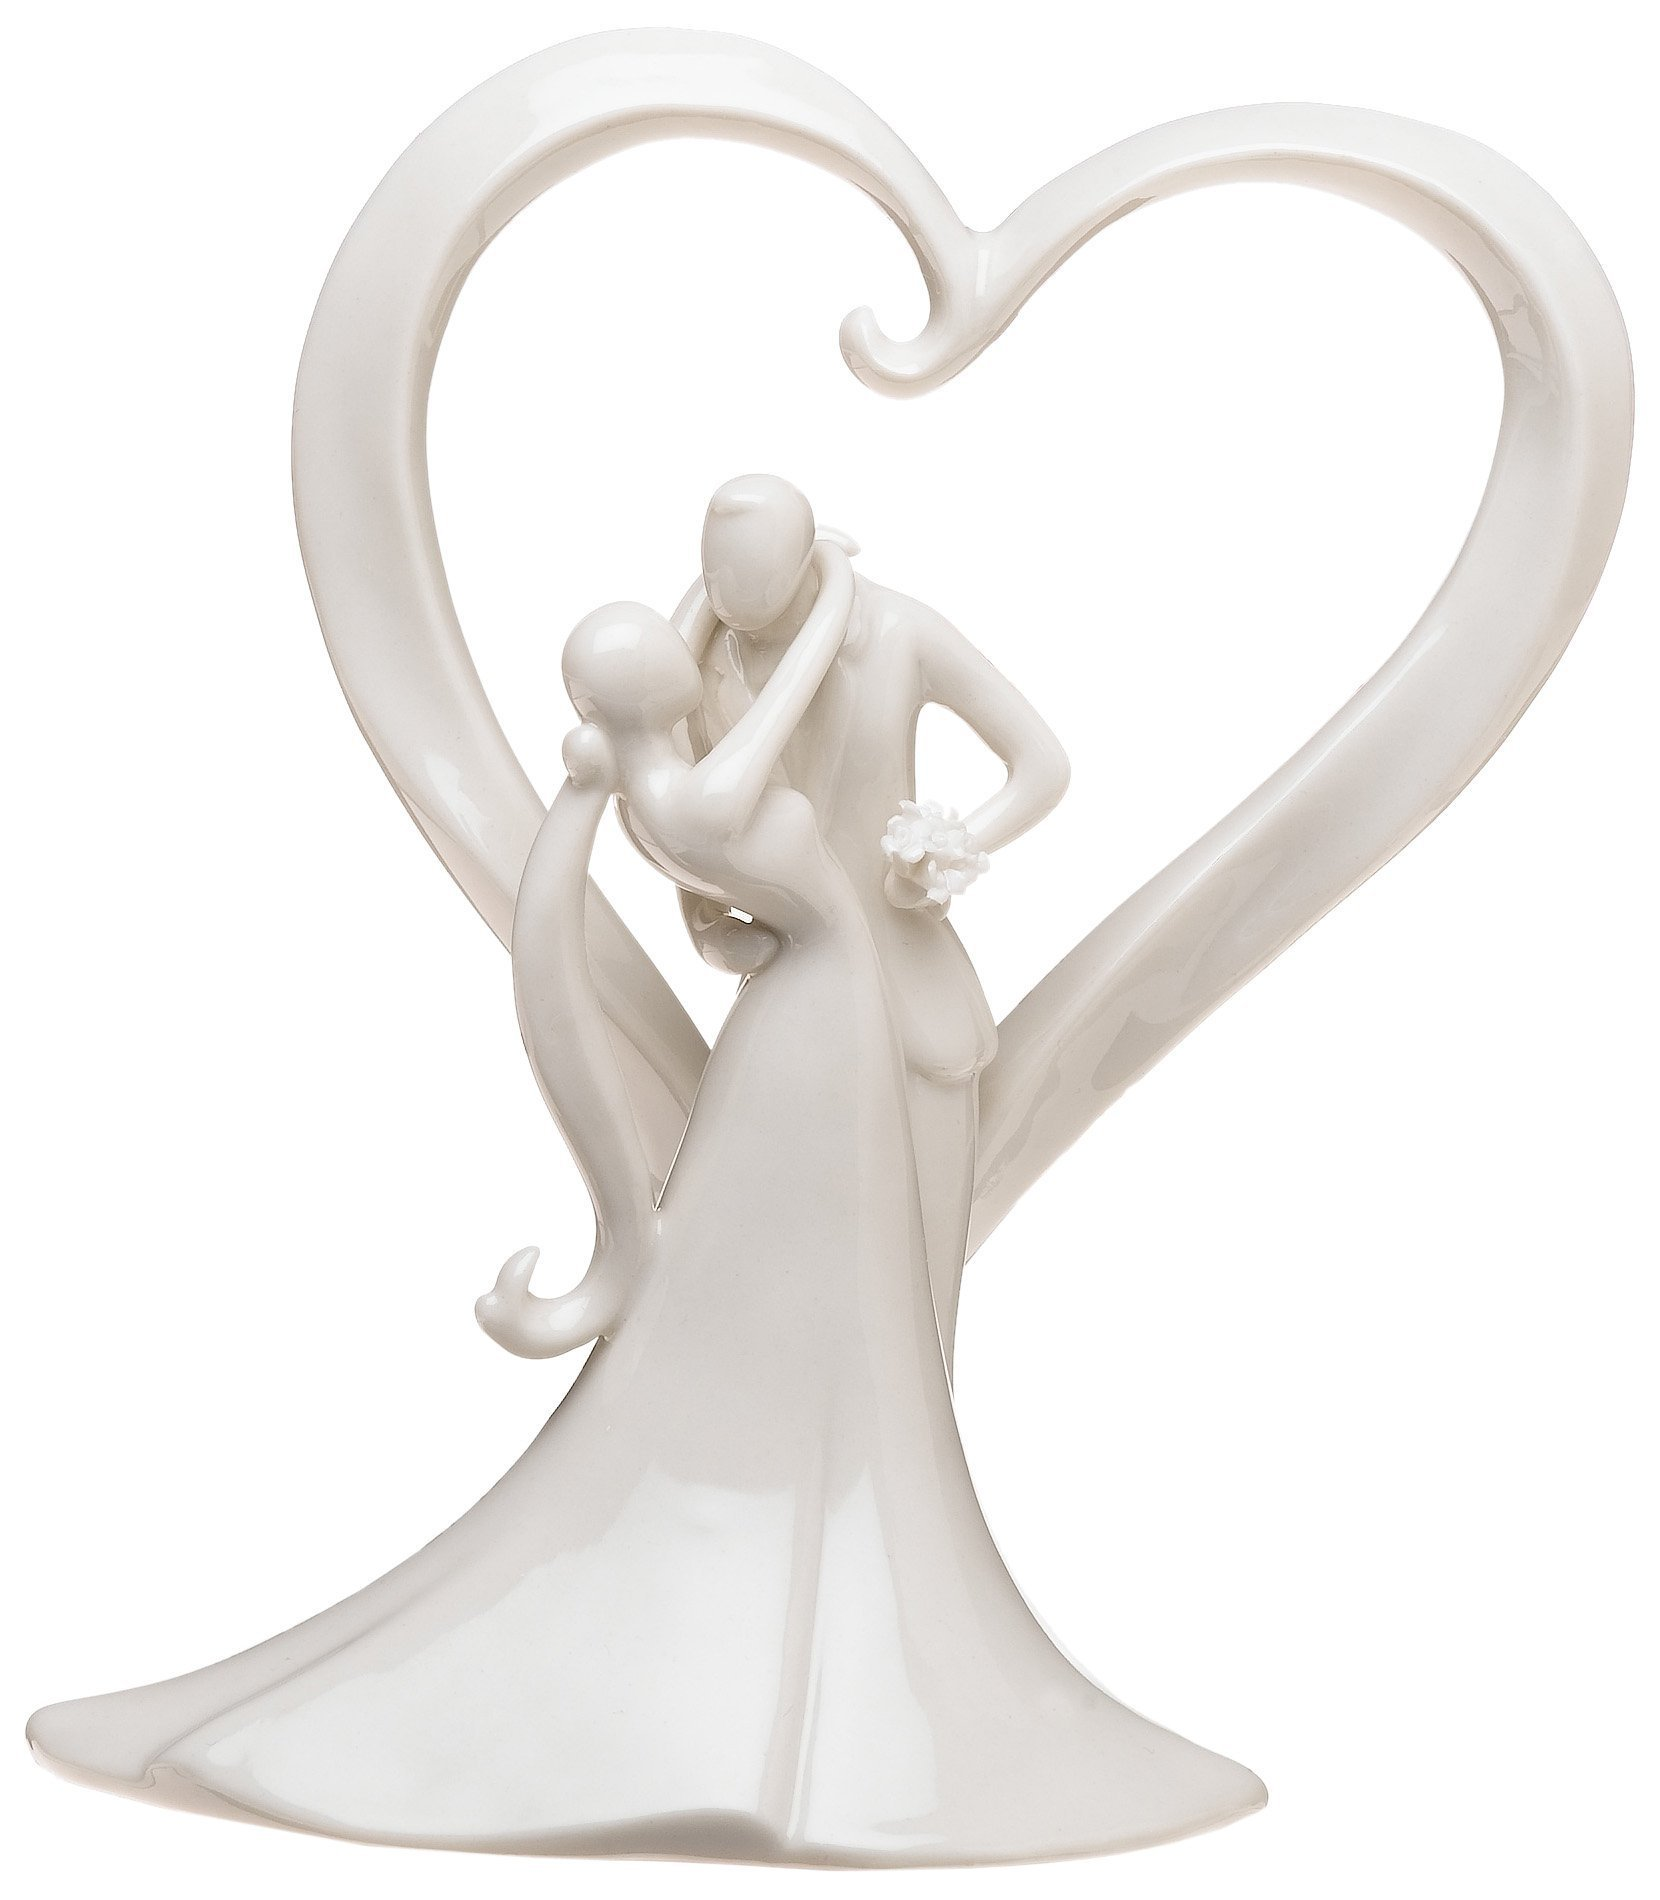 Weddingstar Stylish Embrace Cake Topper by Weddingstar Inc. (Image #1)